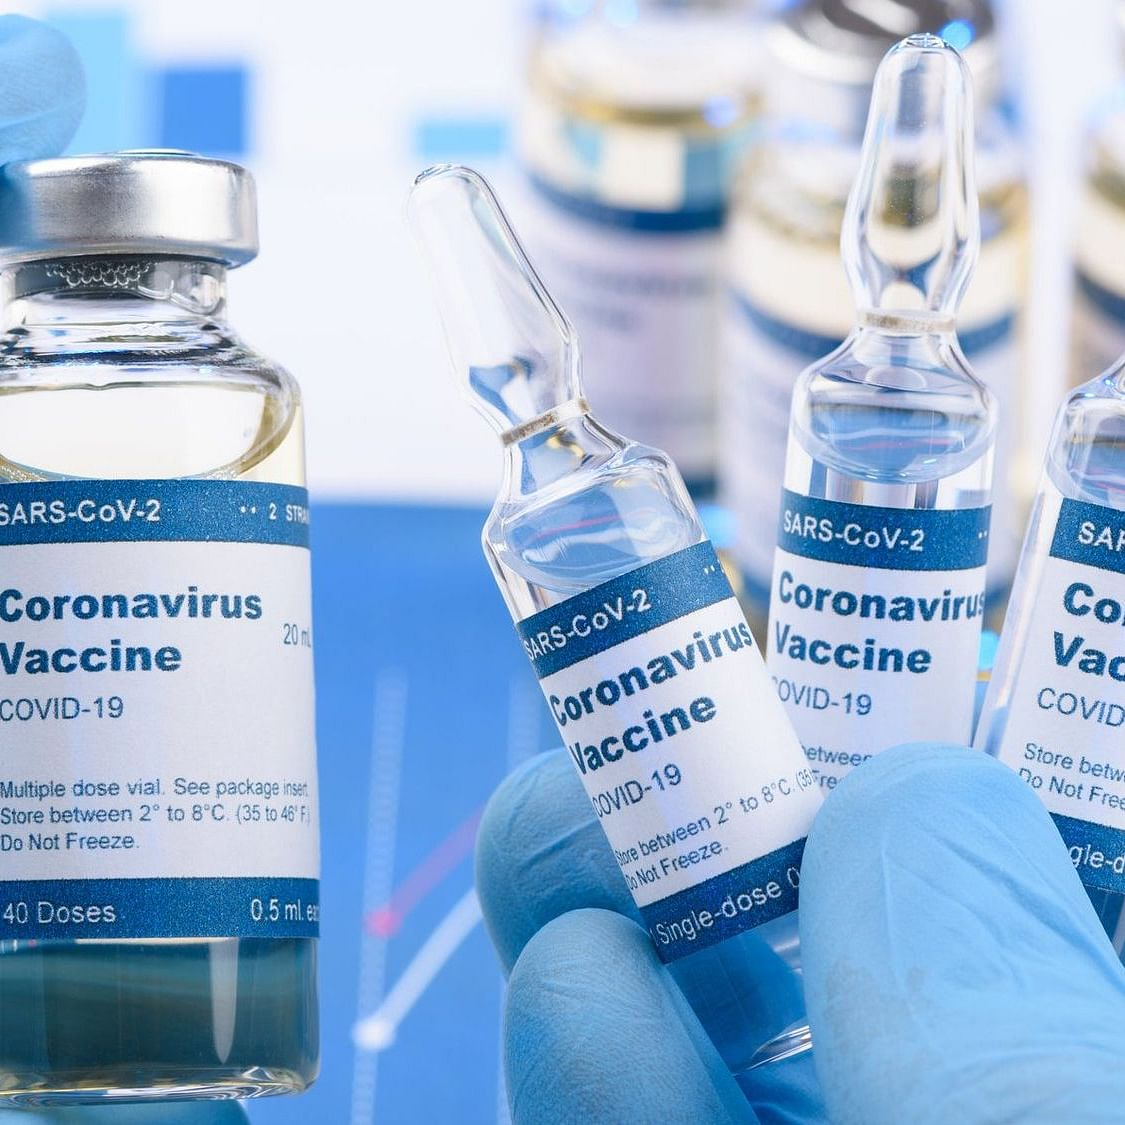 Sikkim to get 12,500 doses of COVID-19 vaccine soon